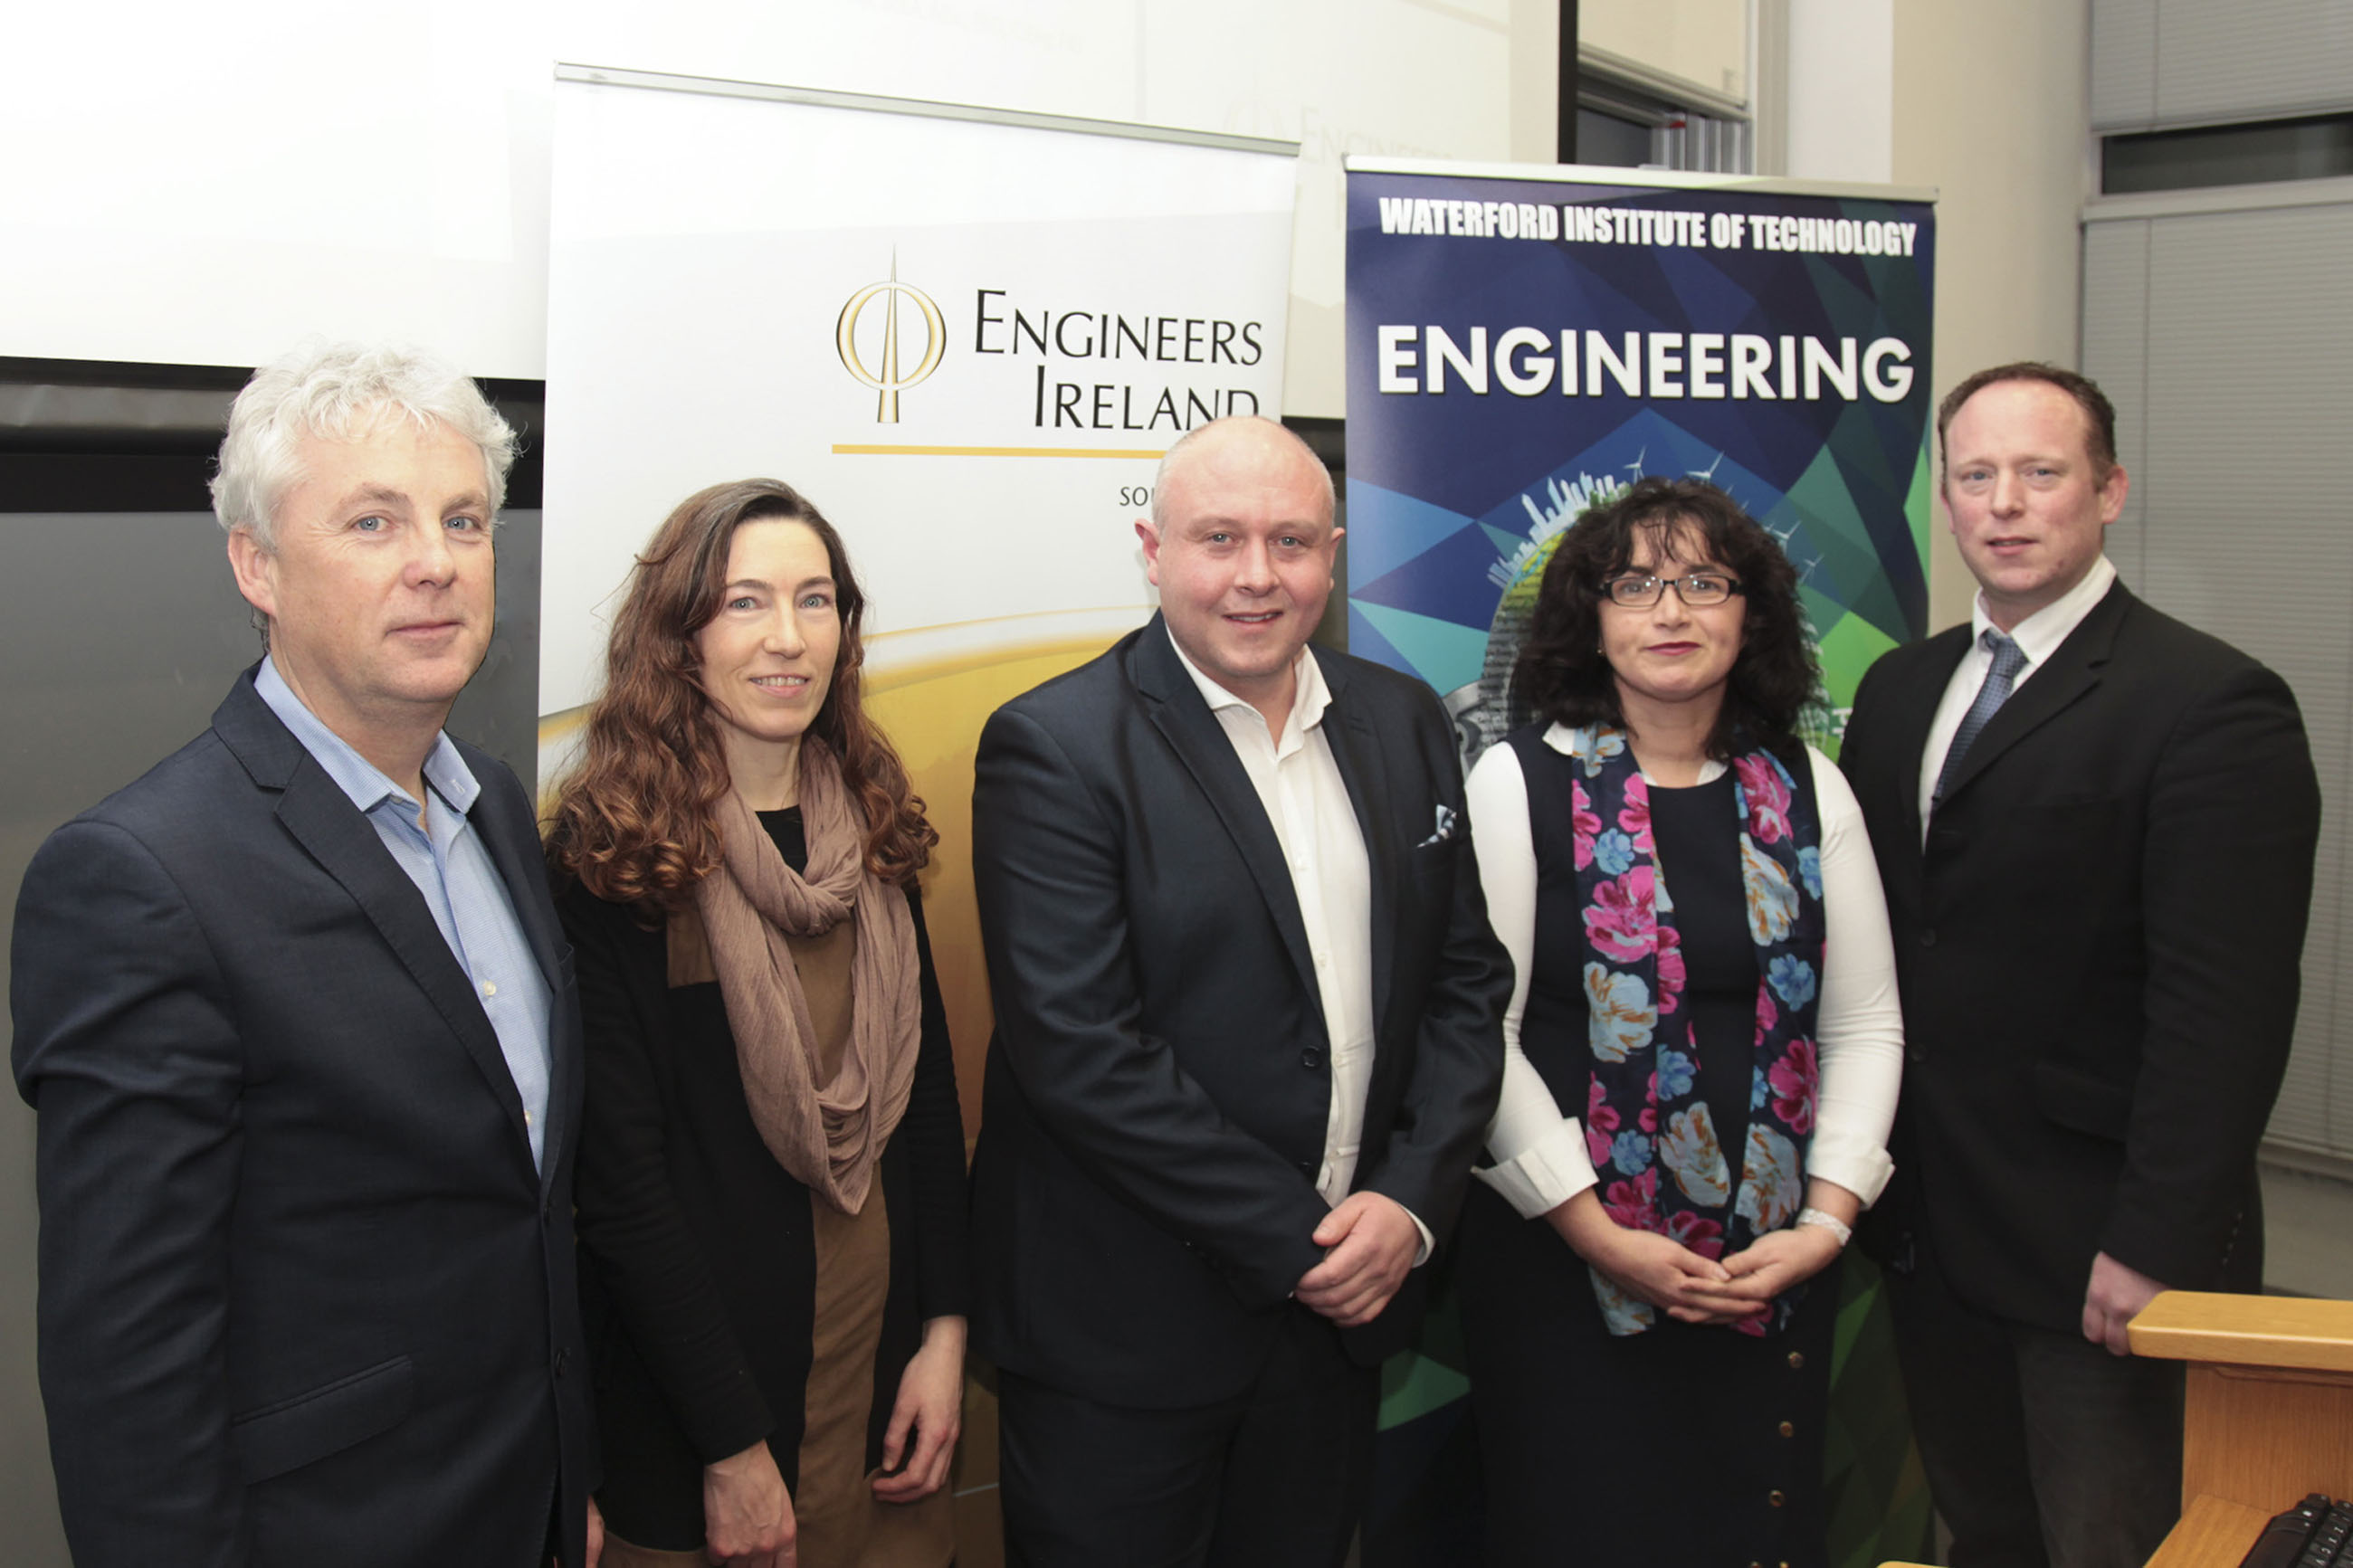 Dr Kennedy's Biomedical talk was hosted by Engineers Ireland South East Region and the School of Engineering Waterford Institute of Technology